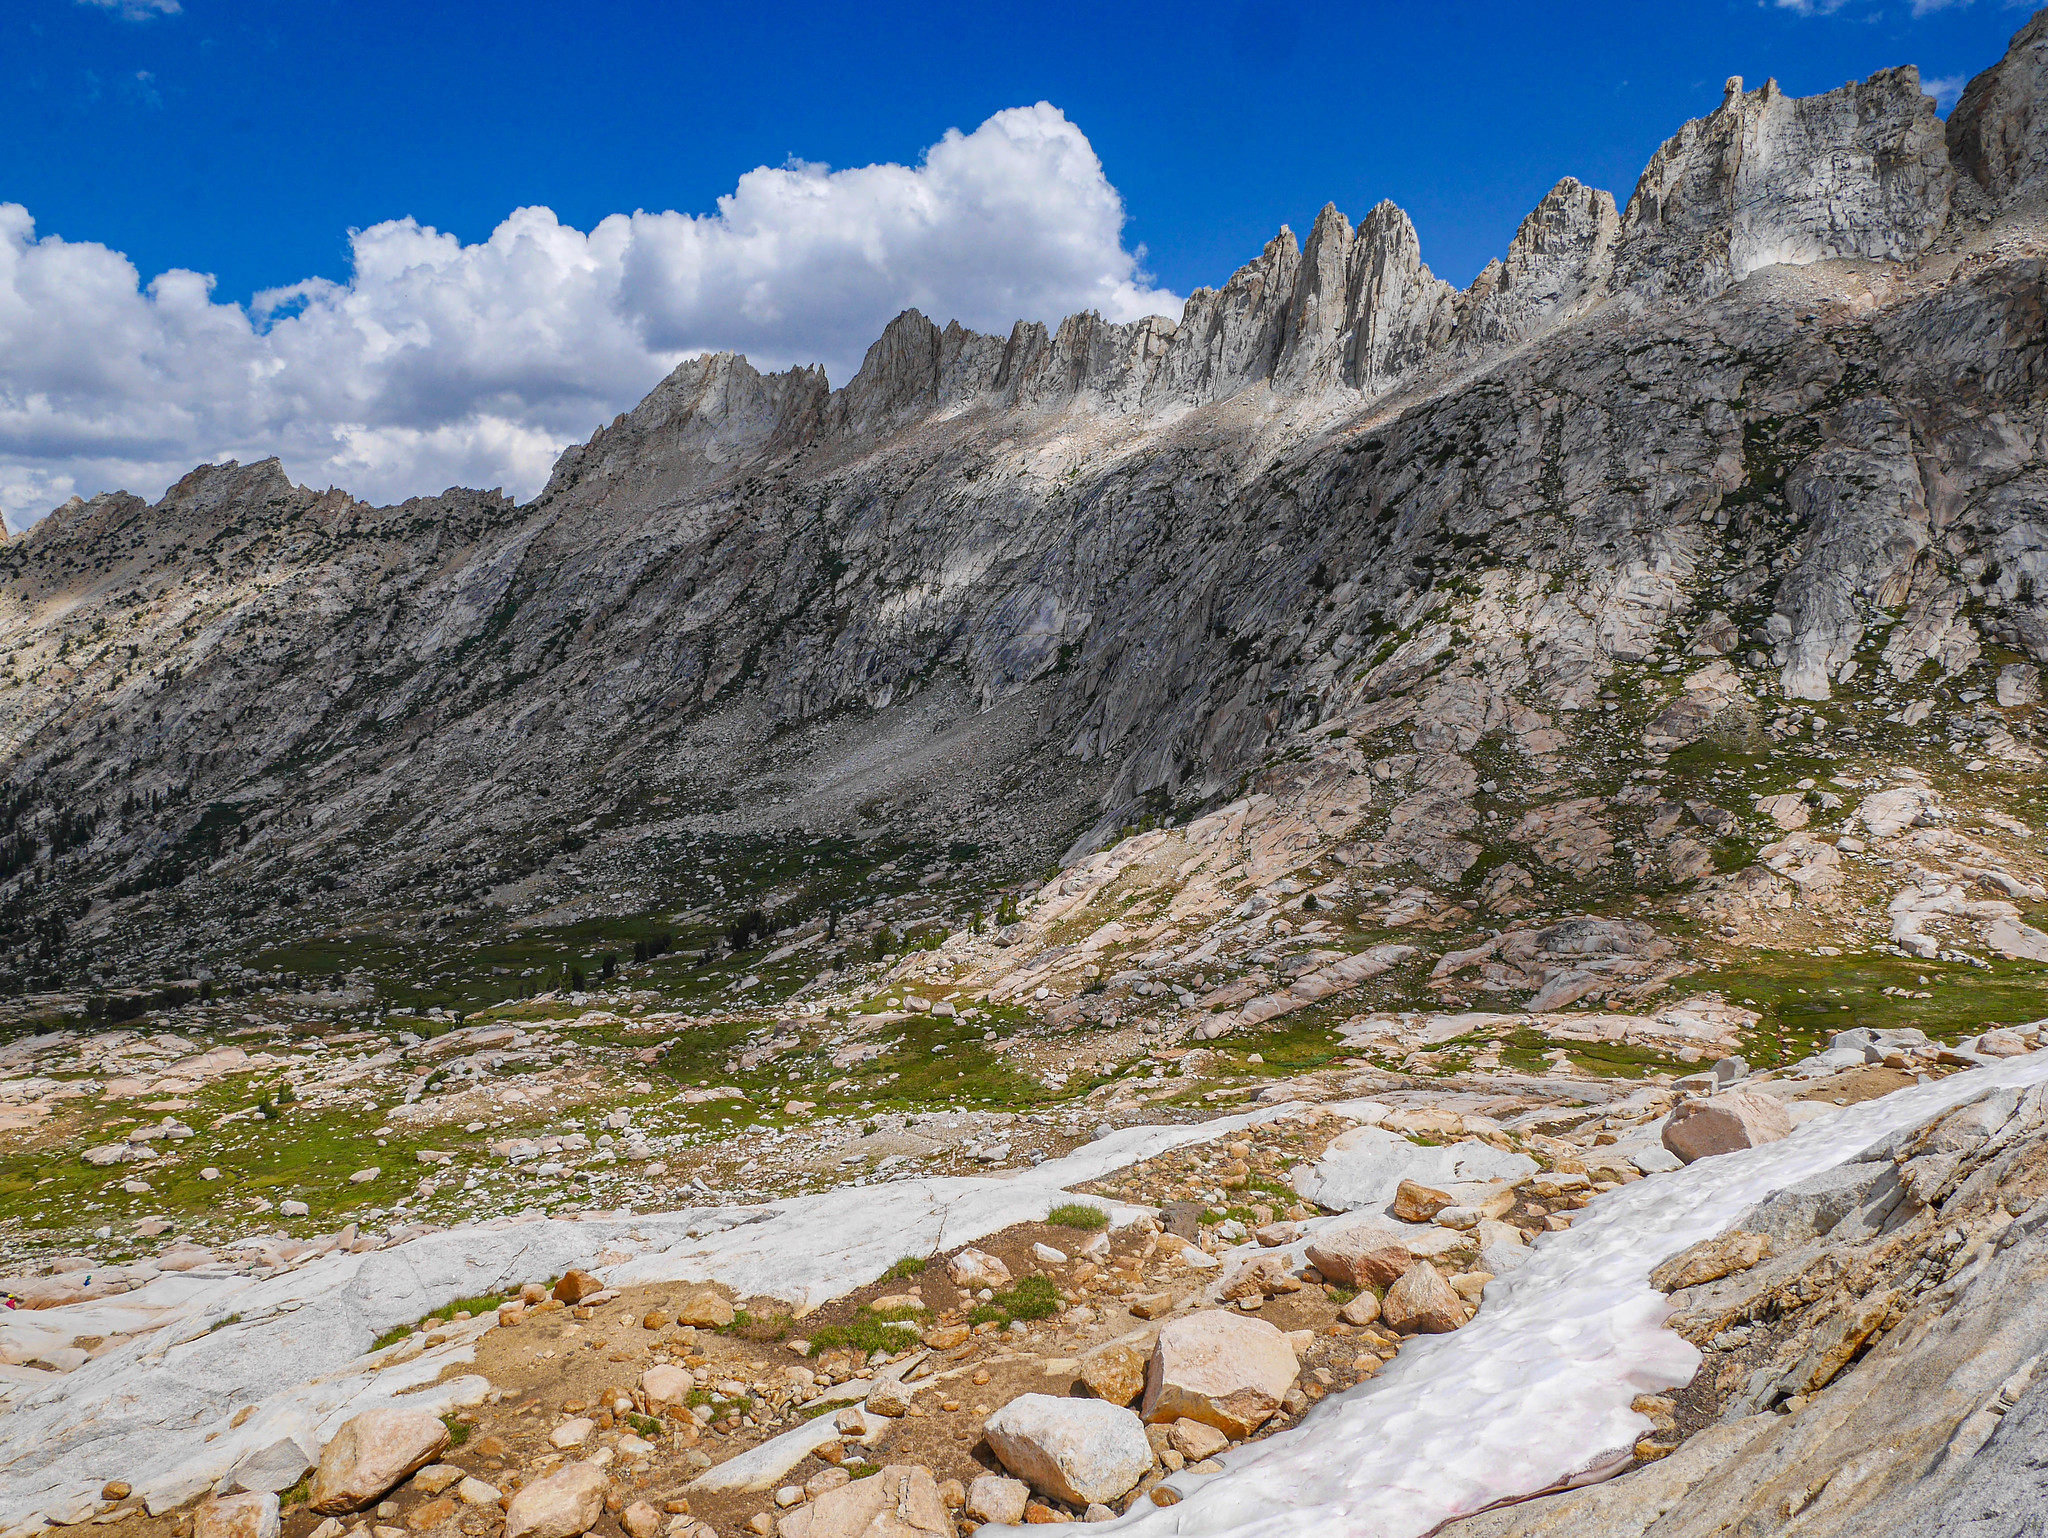 Sawtooth Ridge from Burro Pass